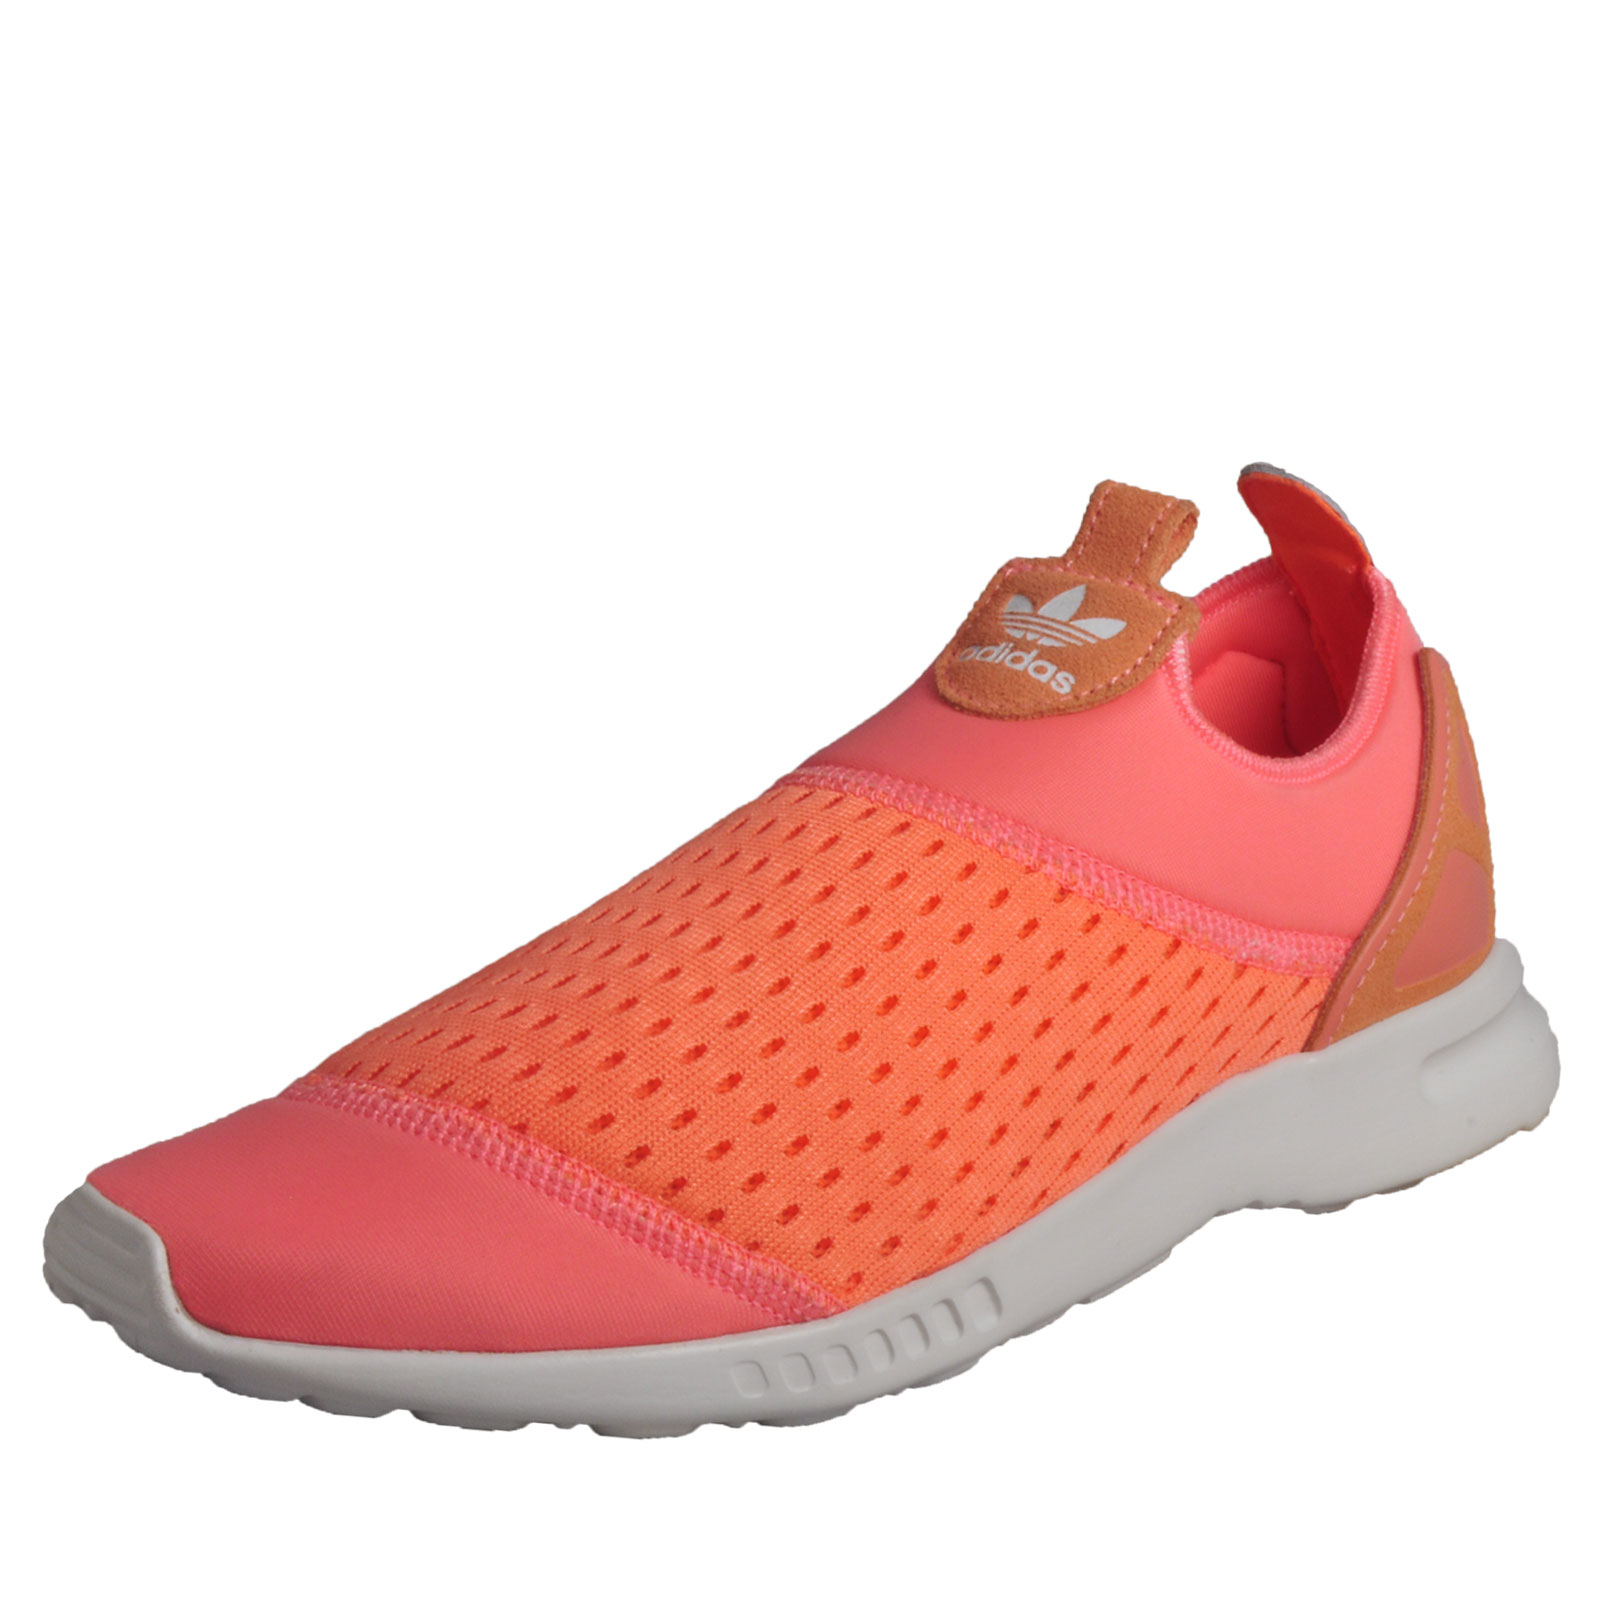 204b37297 Details about Adidas Originals ZX Flux Adv Smooth Slip-On Women s Fitness  Gym Trainers Pink